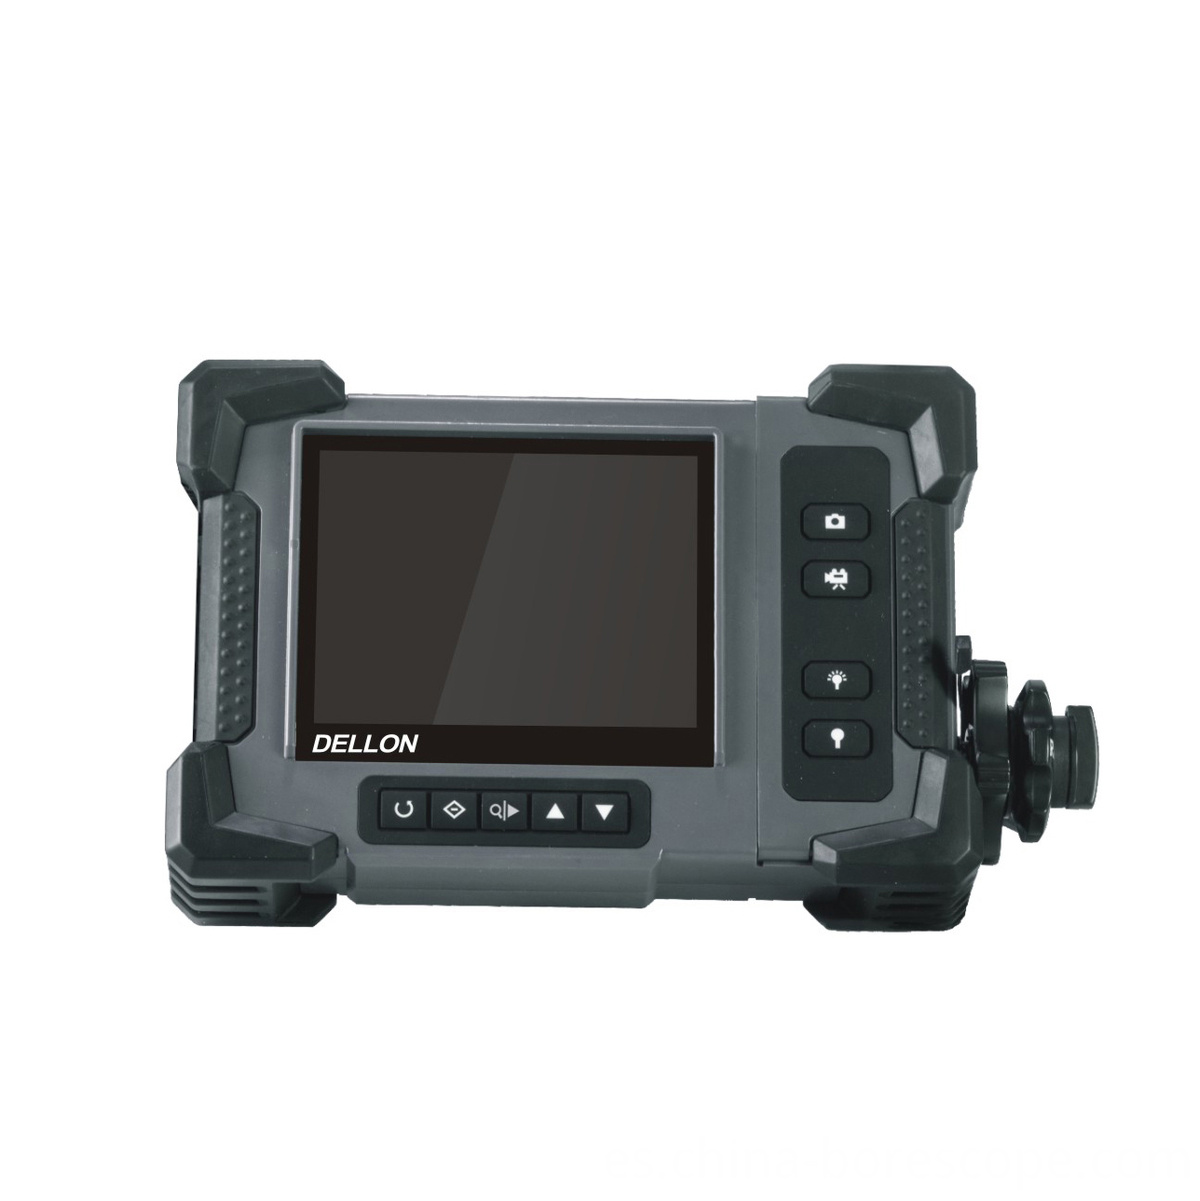 Automotive inspection camera